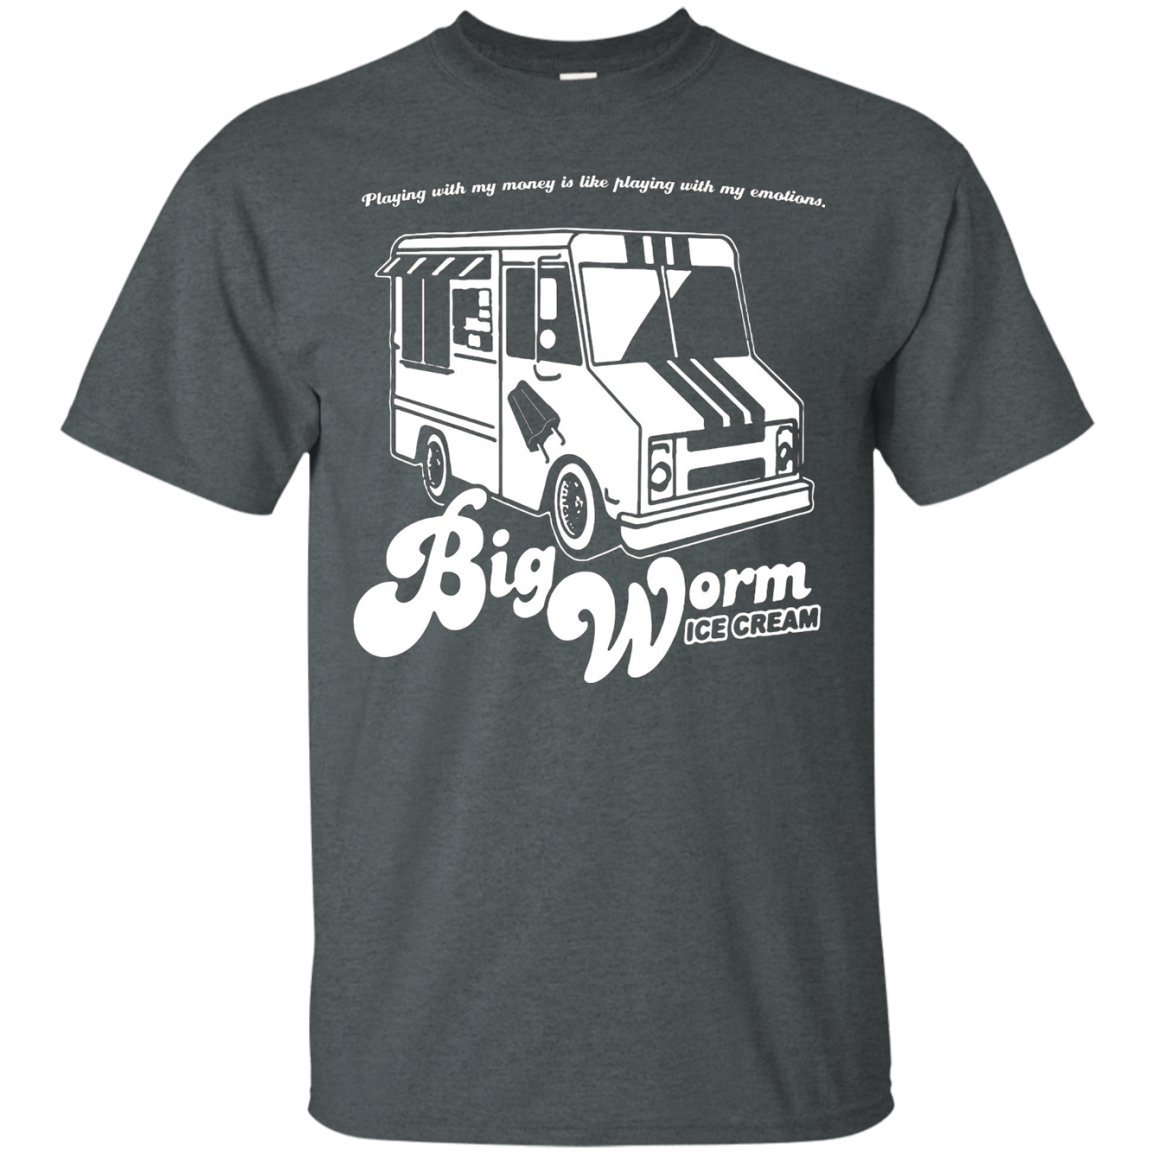 Big Worm T-Shirt - Ice Cream Truck Shirt